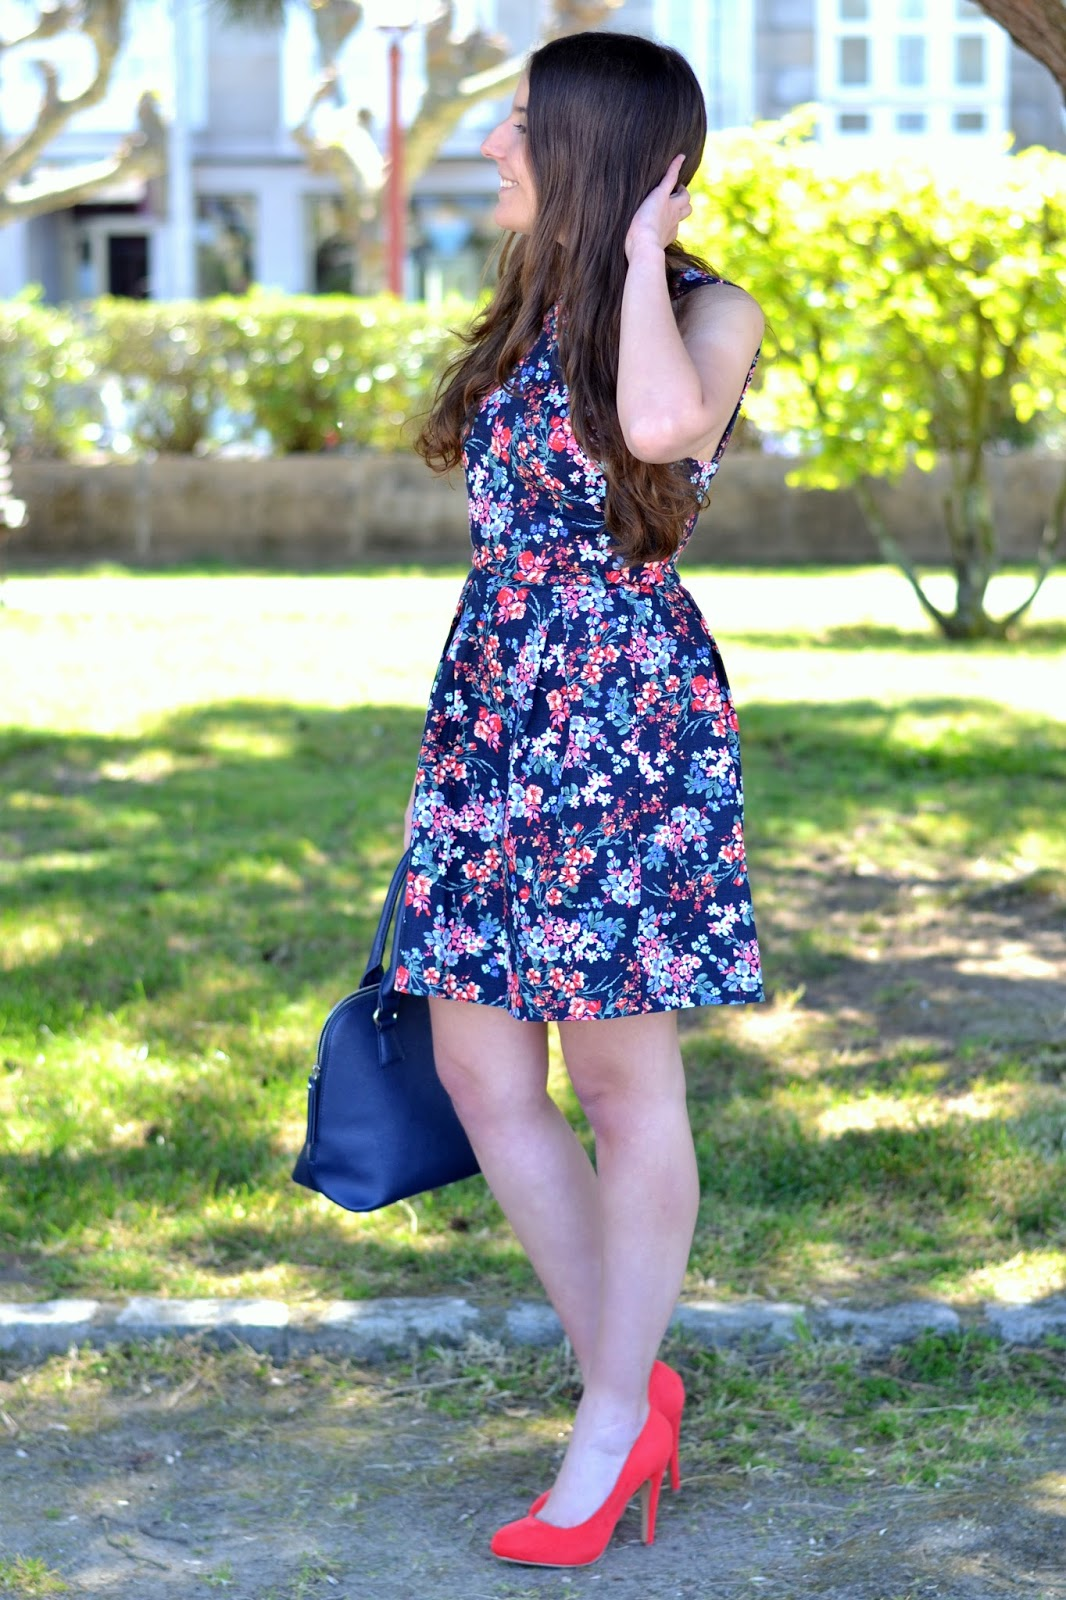 spring outfits, stradivarius floral print, marypaz coral heels